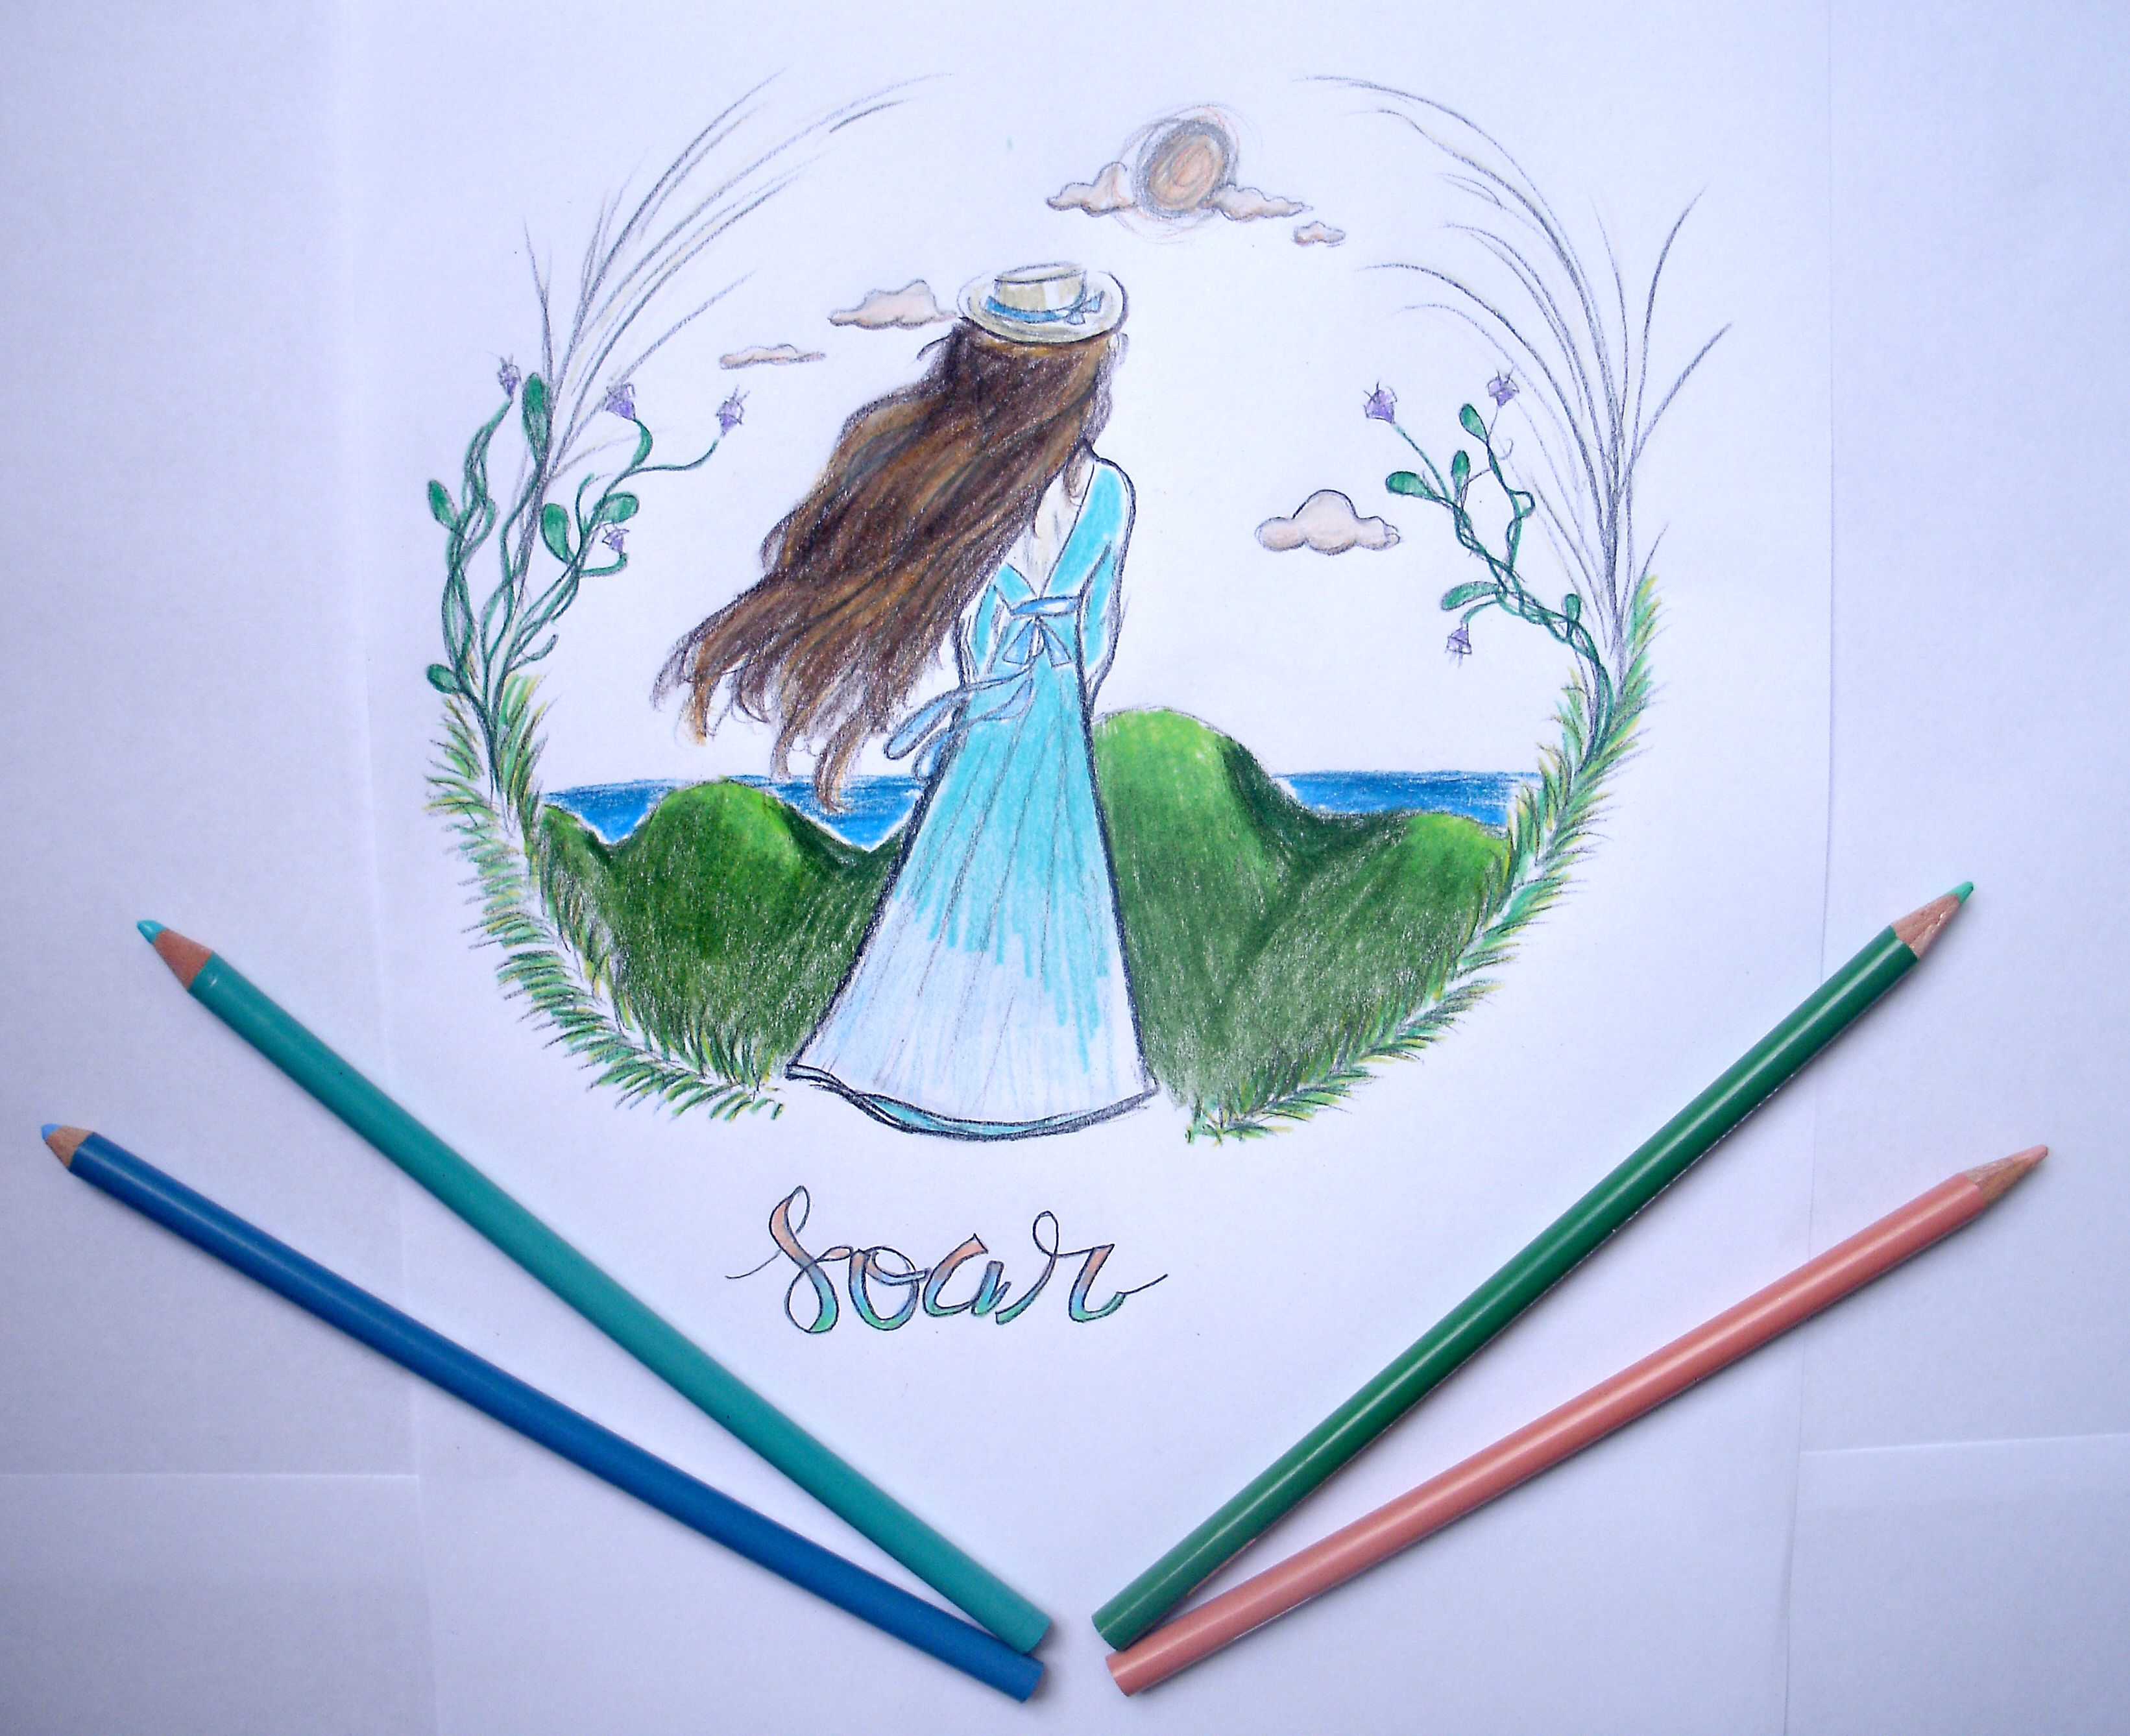 Soar Seethesea Colored Pencil Doodle By Michaila Janae Prismacolor Soar Girl Drawing Pencil Idea Flower Pencil Drawings Easy Drawings Girl Drawing Easy See more ideas about marker art, marker drawing, easy drawings. soar seethesea colored pencil doodle by